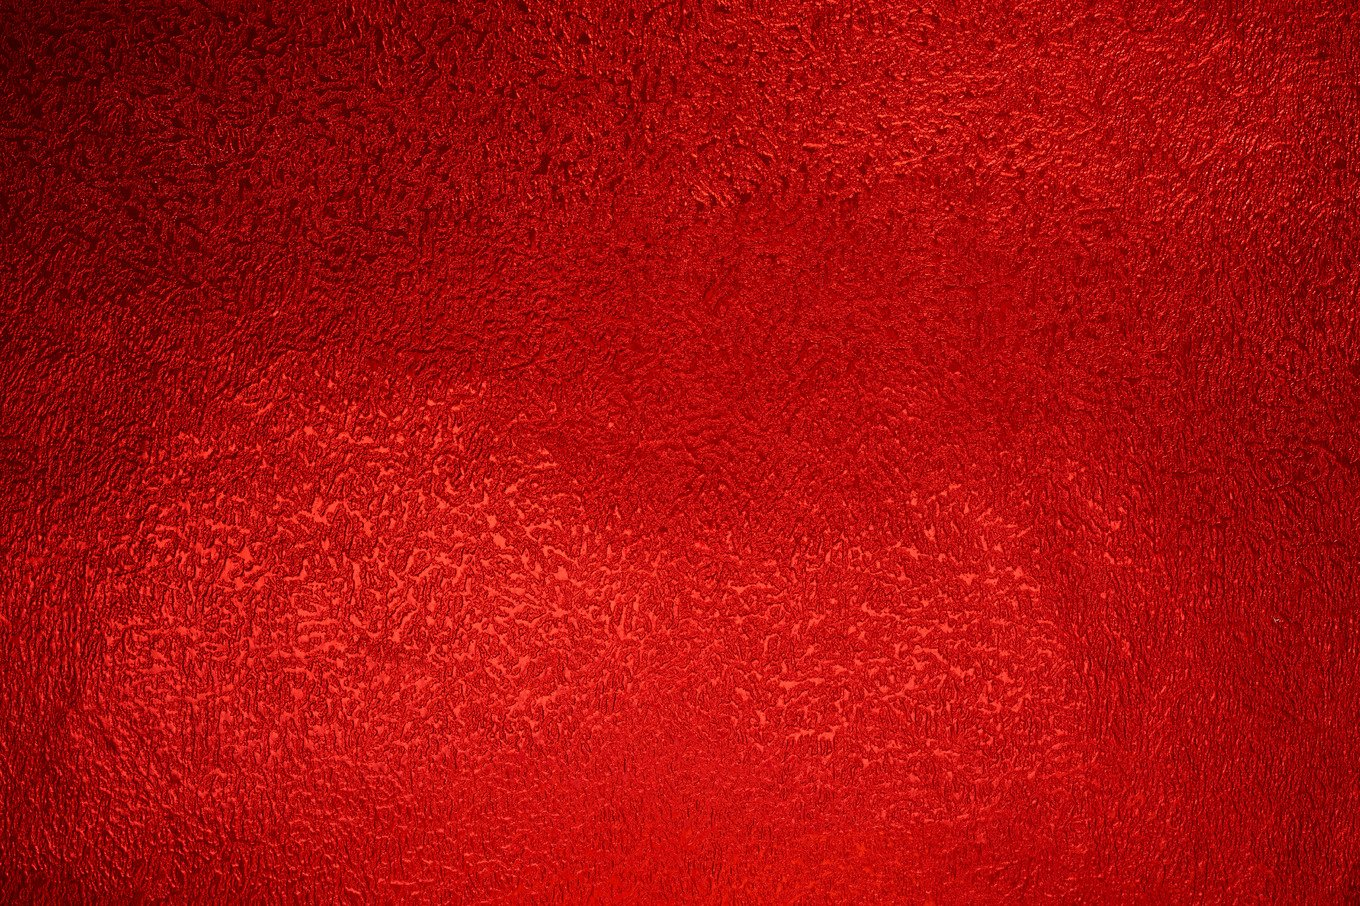 Damask Red Paint